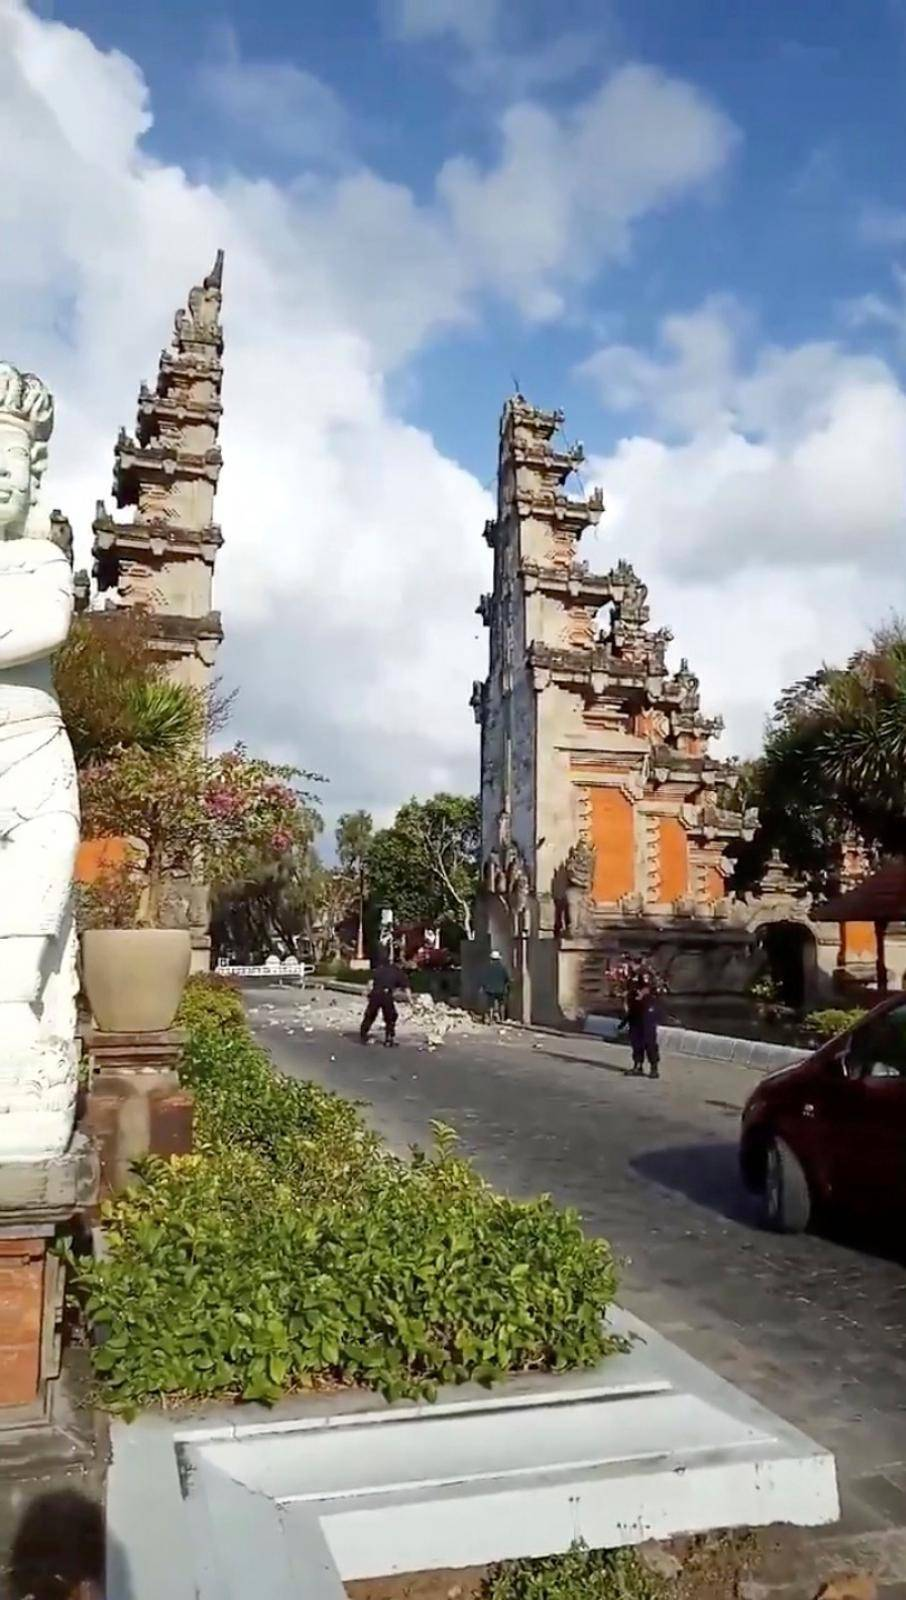 Debris from a partially collapsed gate blocks a road in Nusa Dua